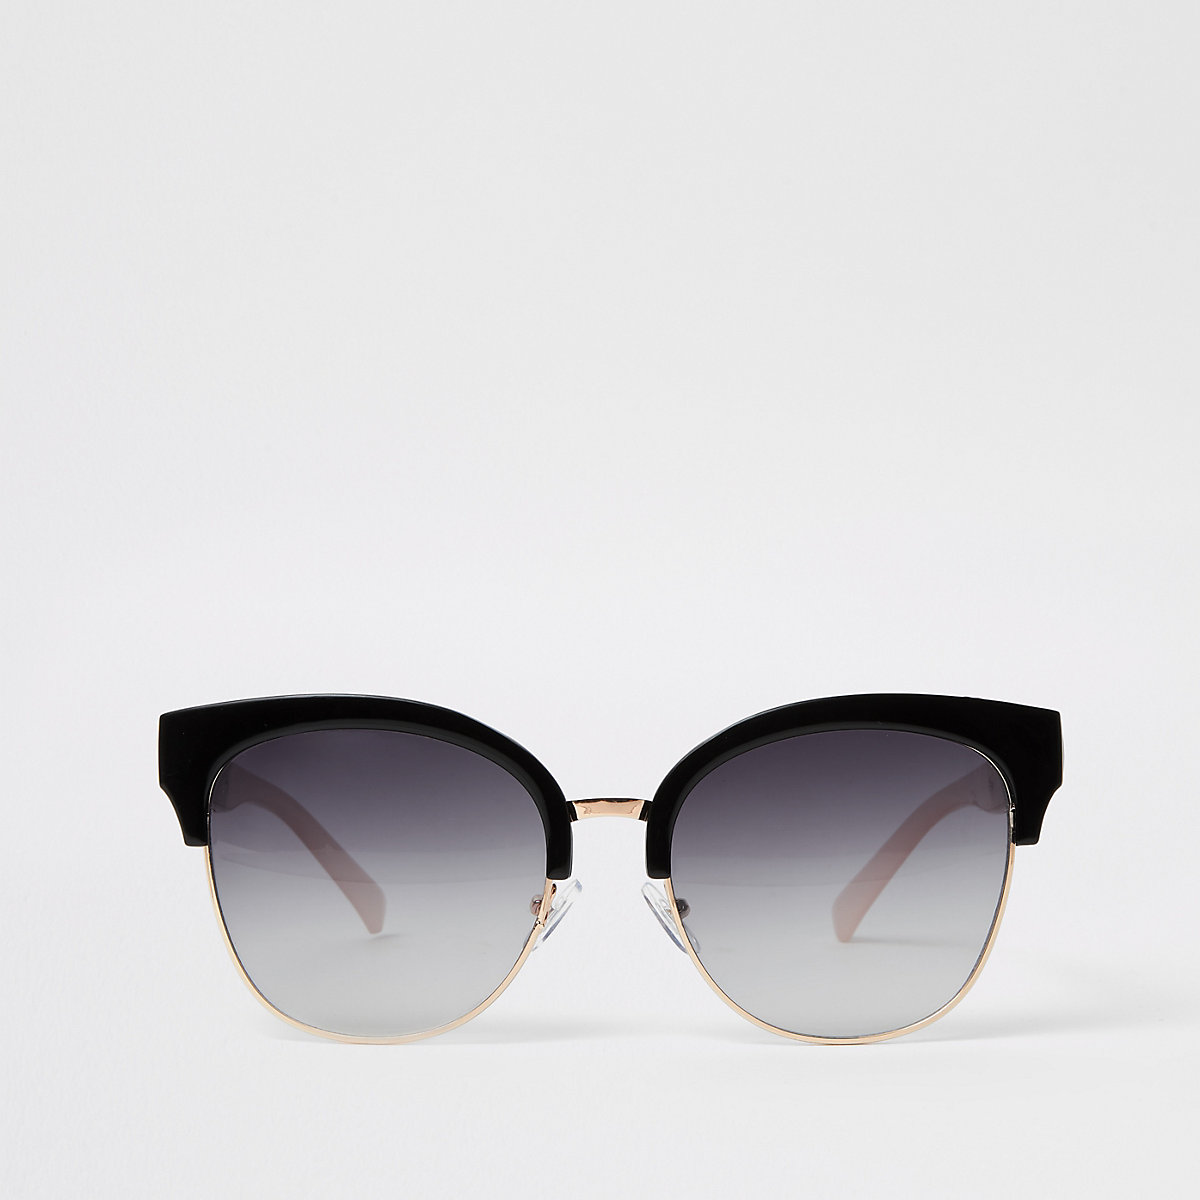 Gold tone black lens oversize sunglasses